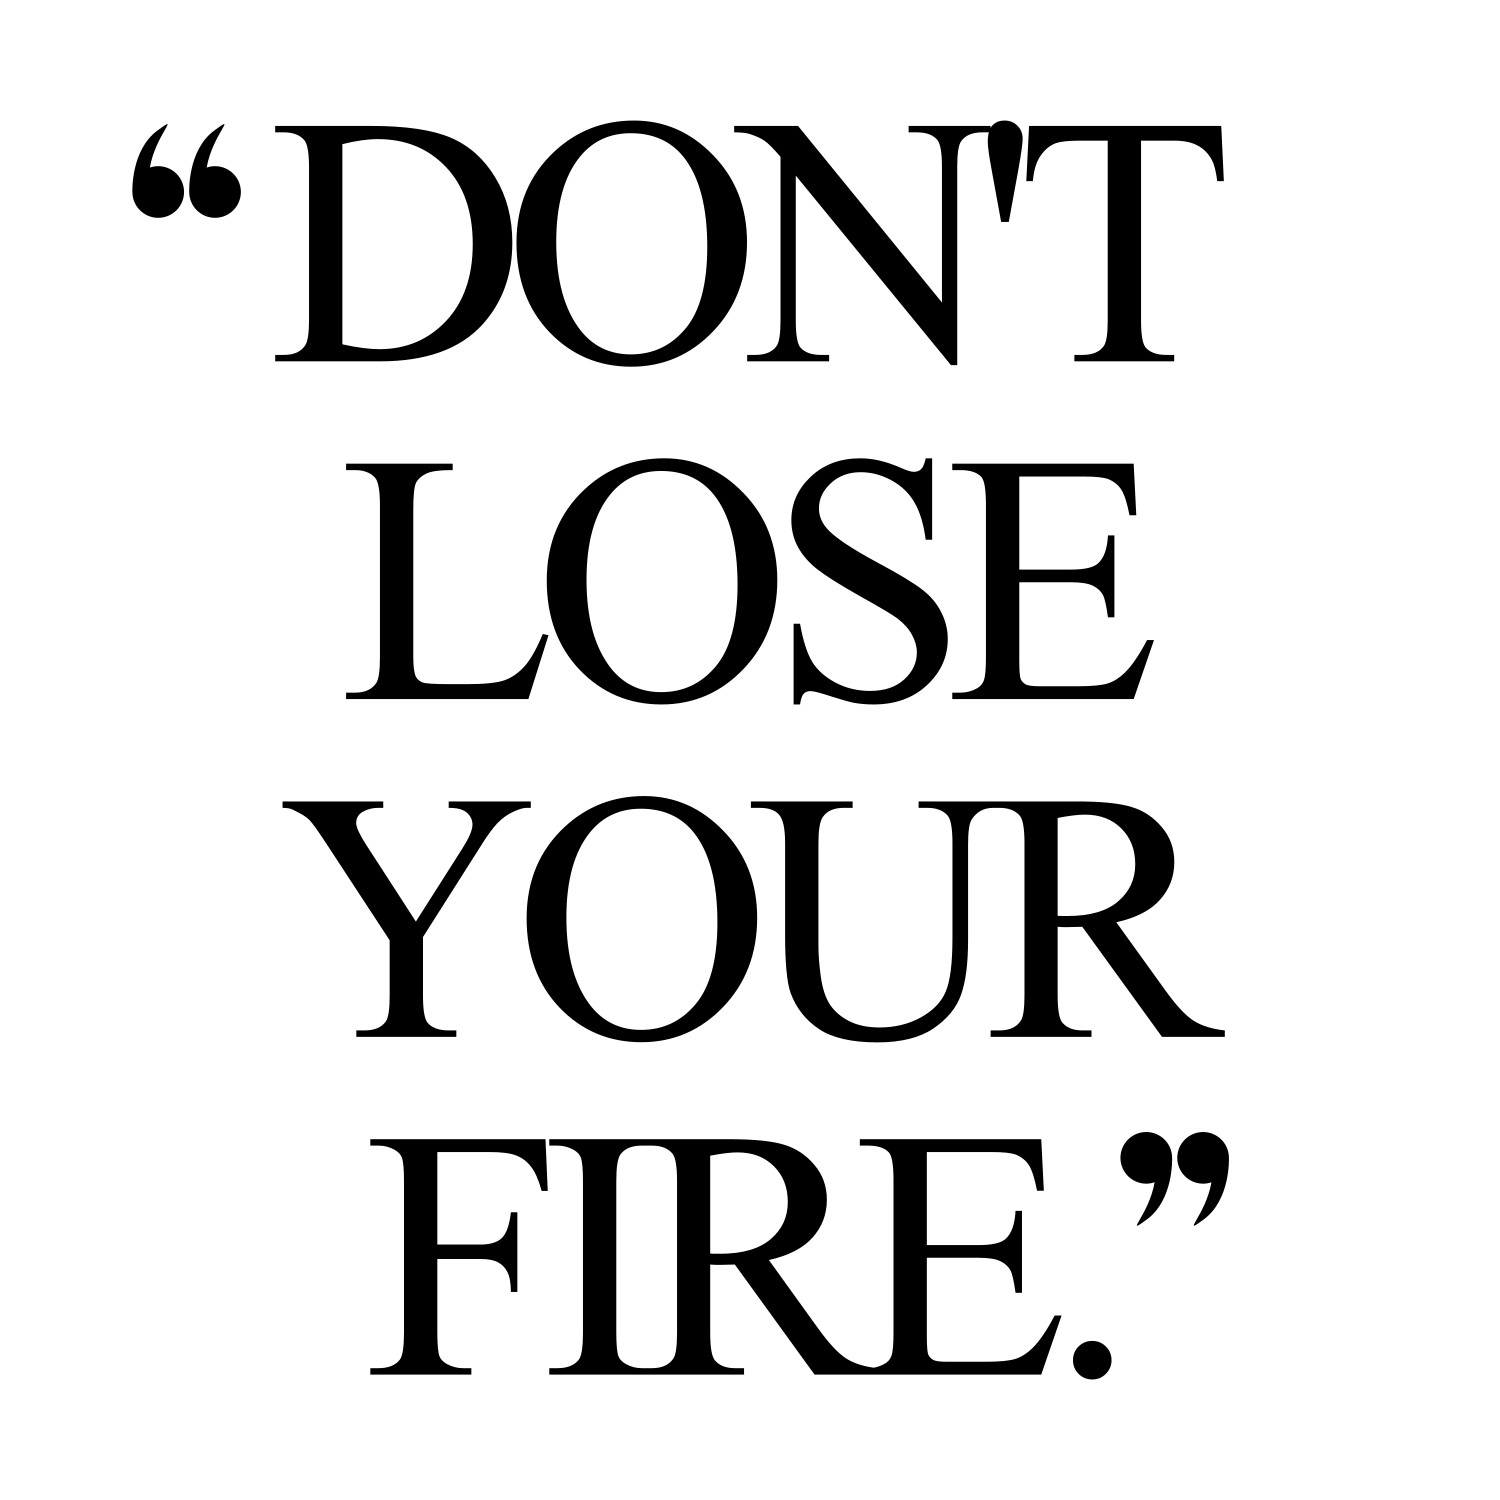 Don't lose your fire! Browse our collection of motivational exercise and training quotes and get instant health and fitness inspiration. Transform positive thoughts into positive actions and get fit, healthy and happy! https://www.spotebi.com/workout-motivation/dont-lose-your-fire-exercise-and-training-quote/